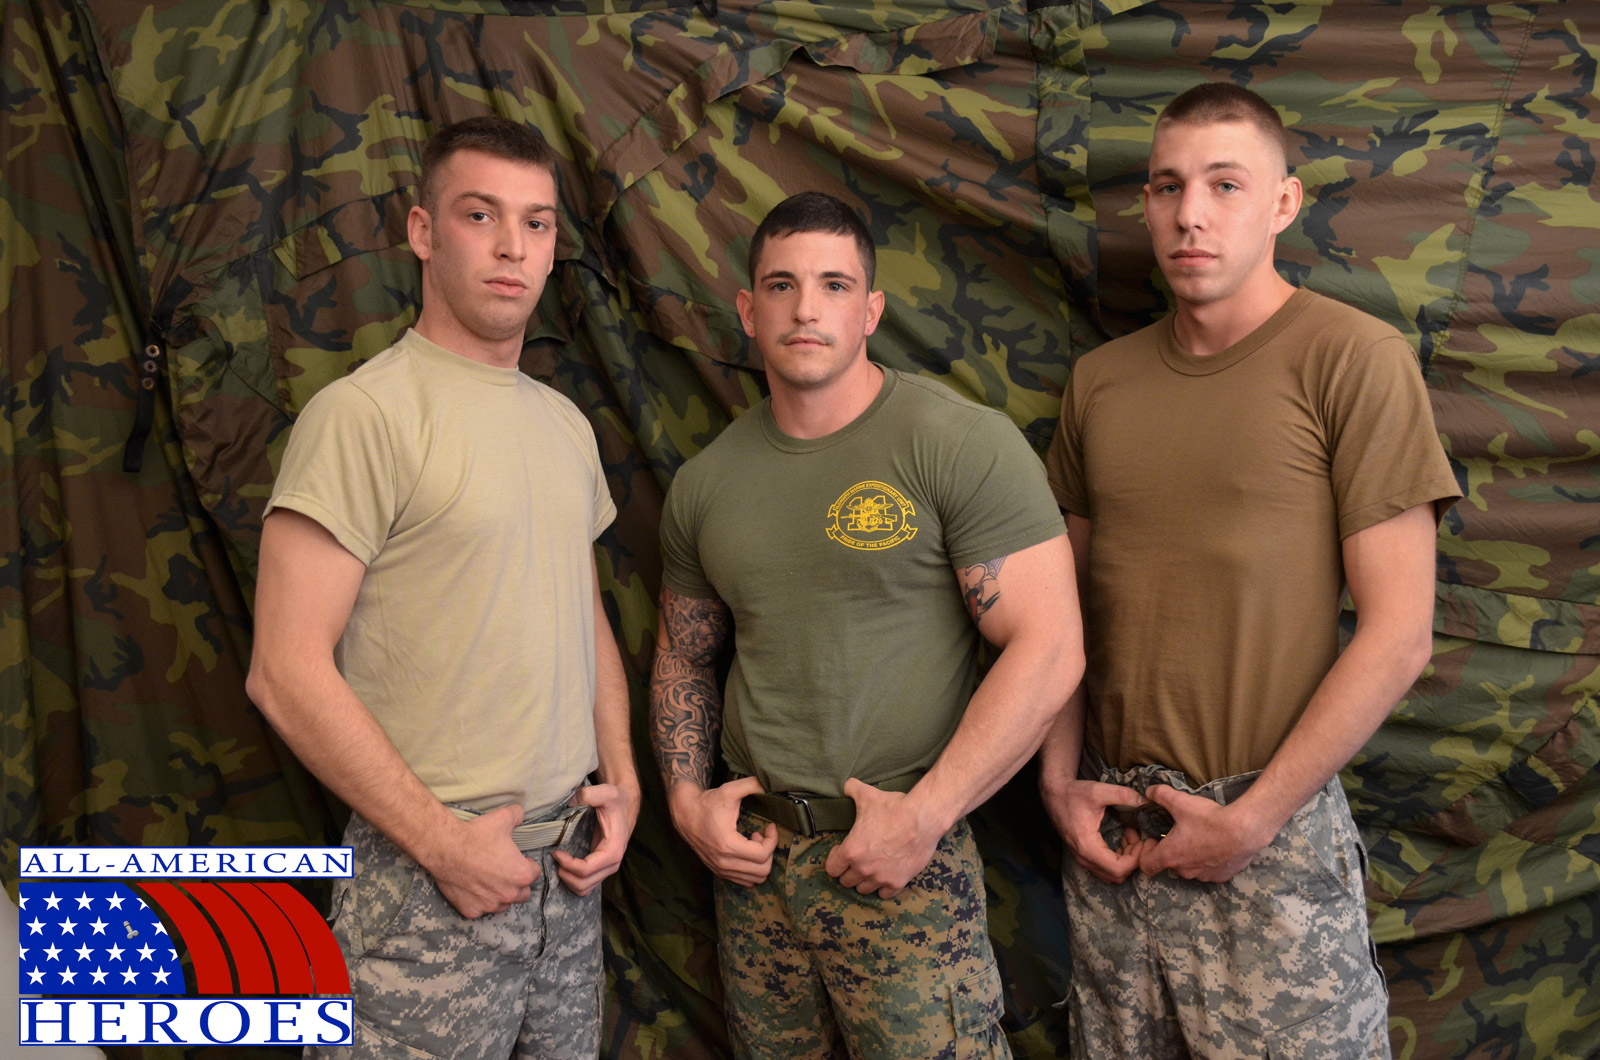 All American Heroes Sergeant Slate Triple fucking big cocks Army guys Amateur Gay Porn 01 Two Real Army Privates Fuck Their Muscle Sergeant and Cum In His Mouth